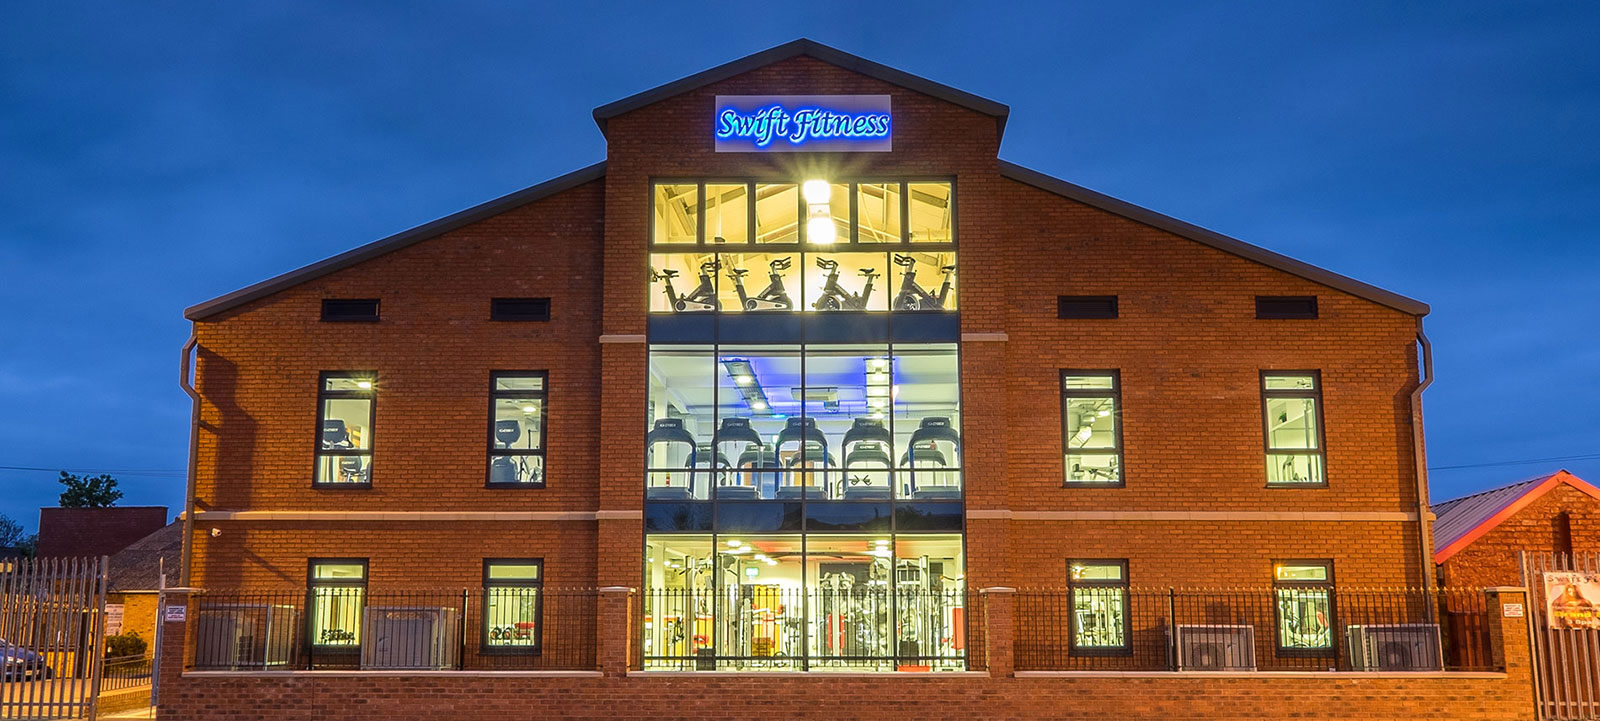 cheap-gyms-in-york-1600px-x-721px